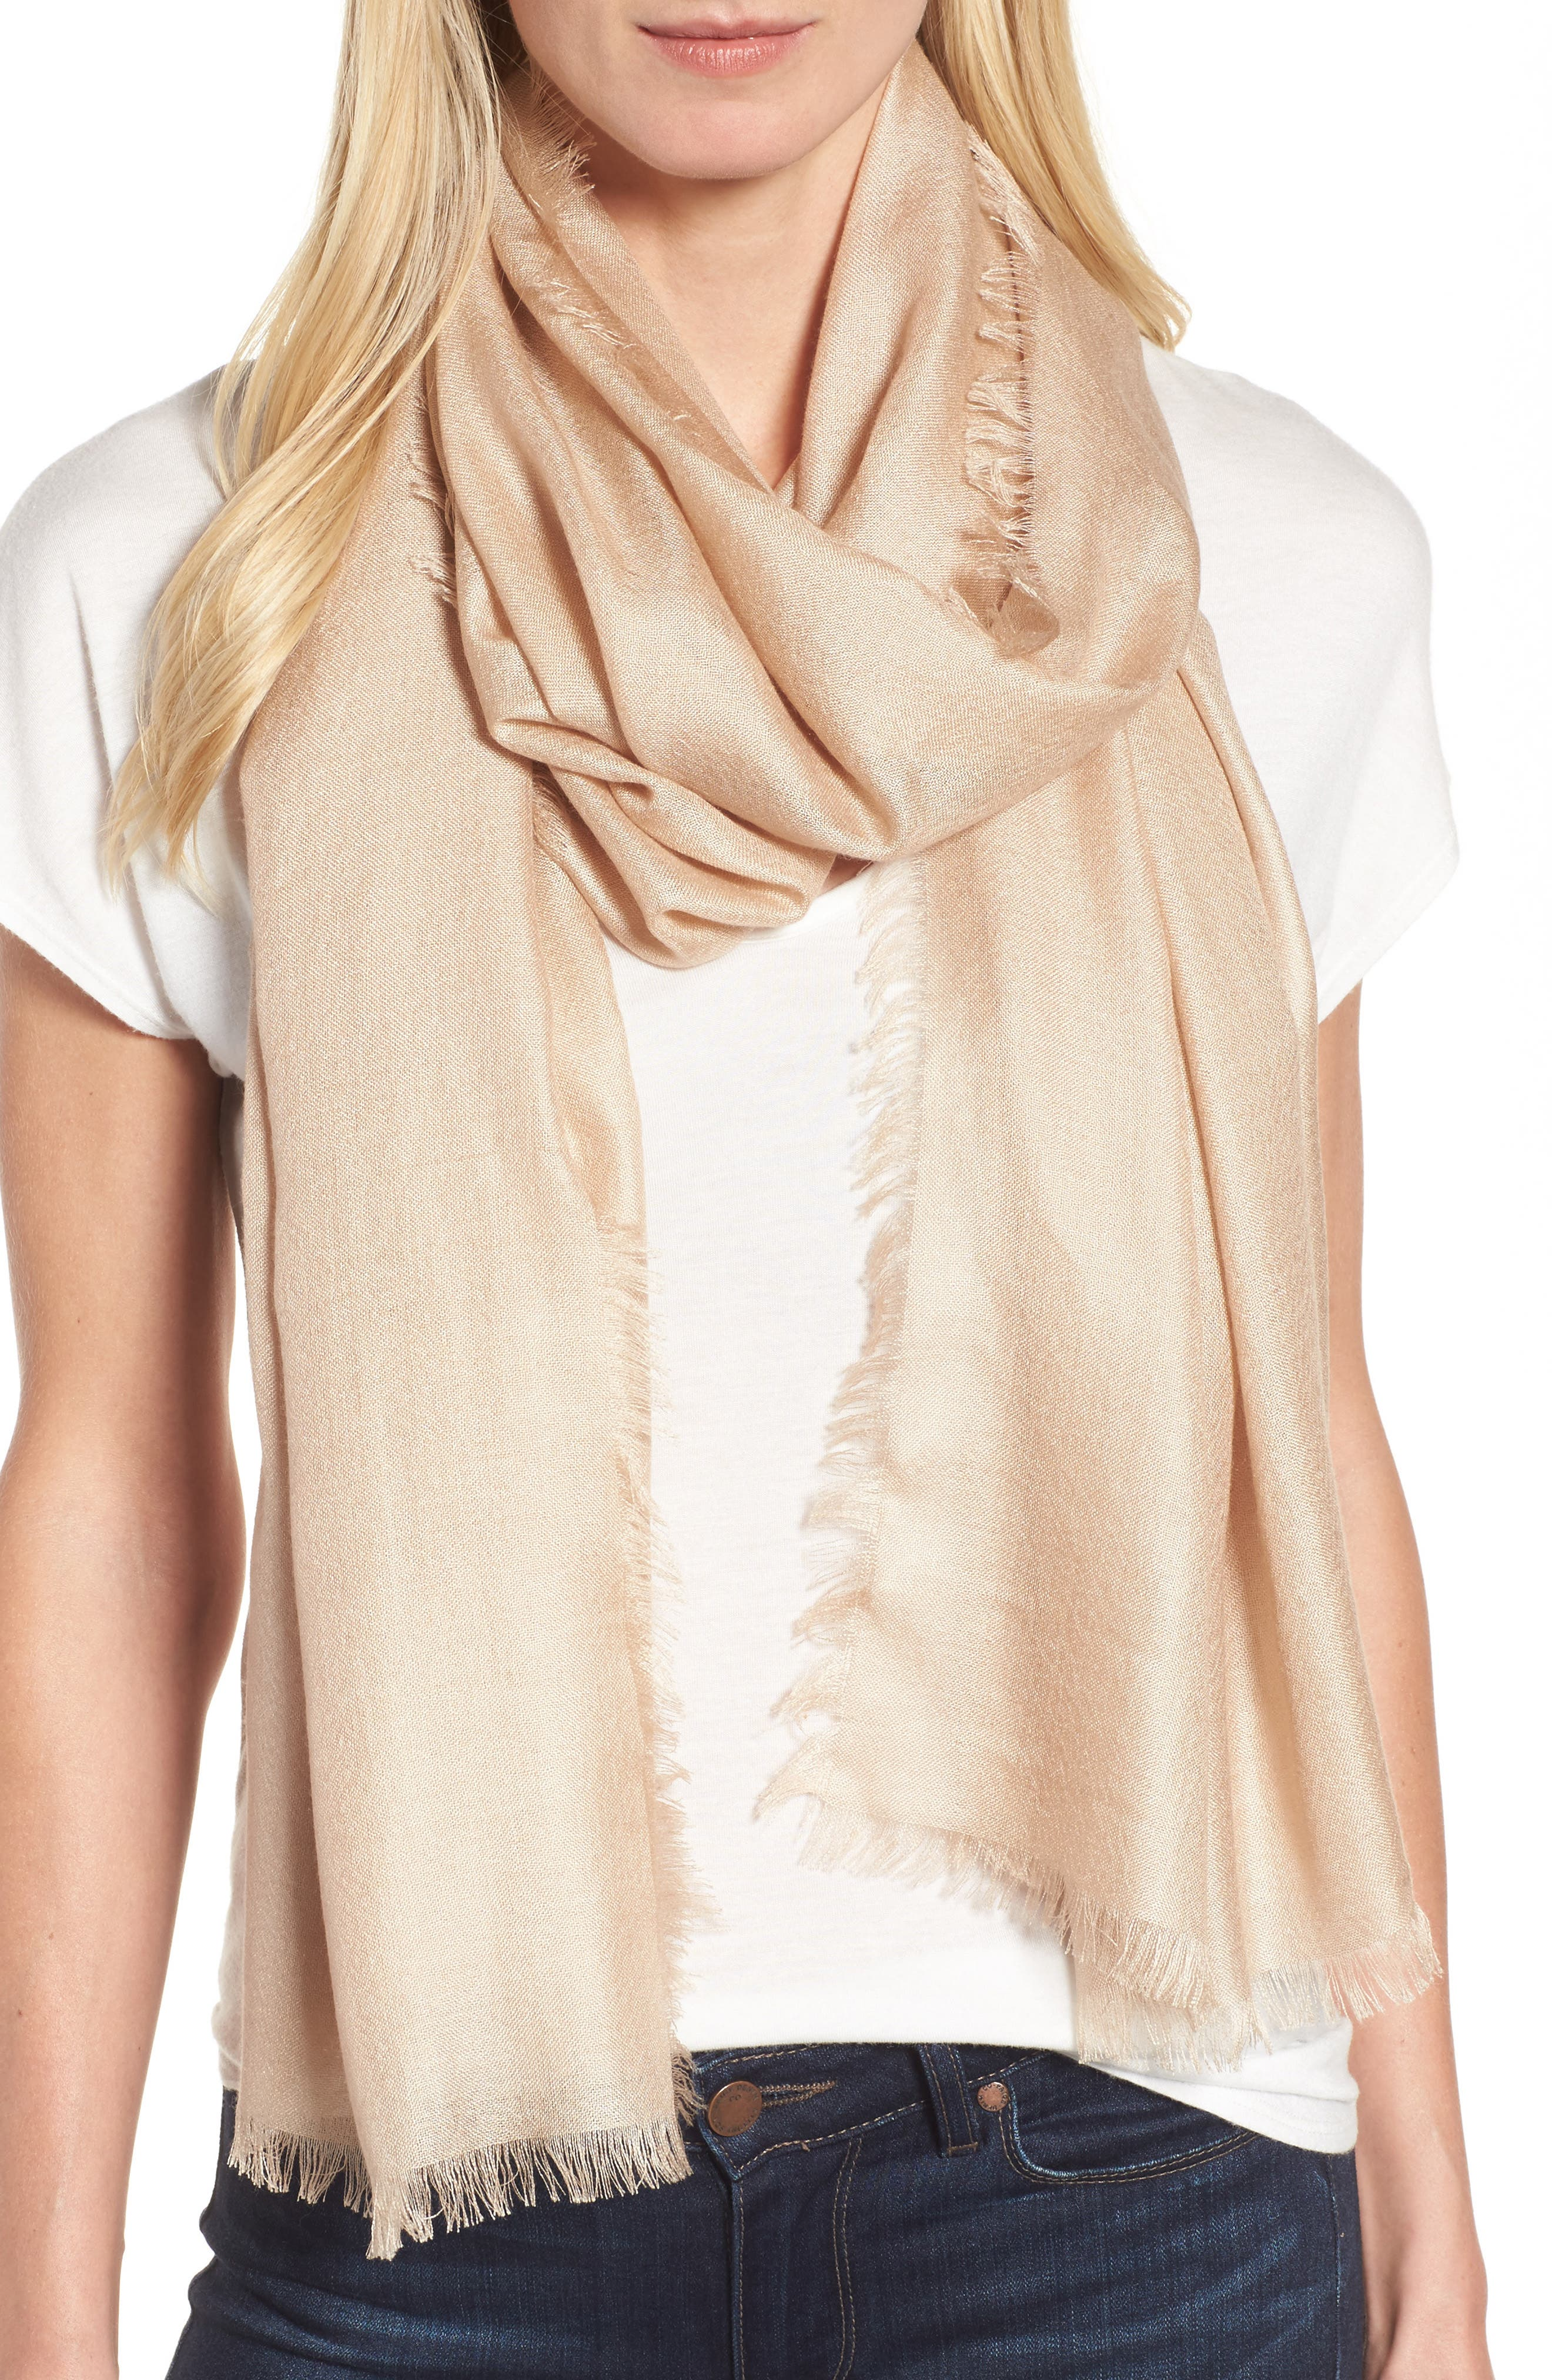 Delicate eyelash fringe frames an airy, ethereal scarf woven from soft silk and cashmere. Style Name: Nordstrom Cashmere & Silk Wrap. Style Number: 355334. Available in stores.